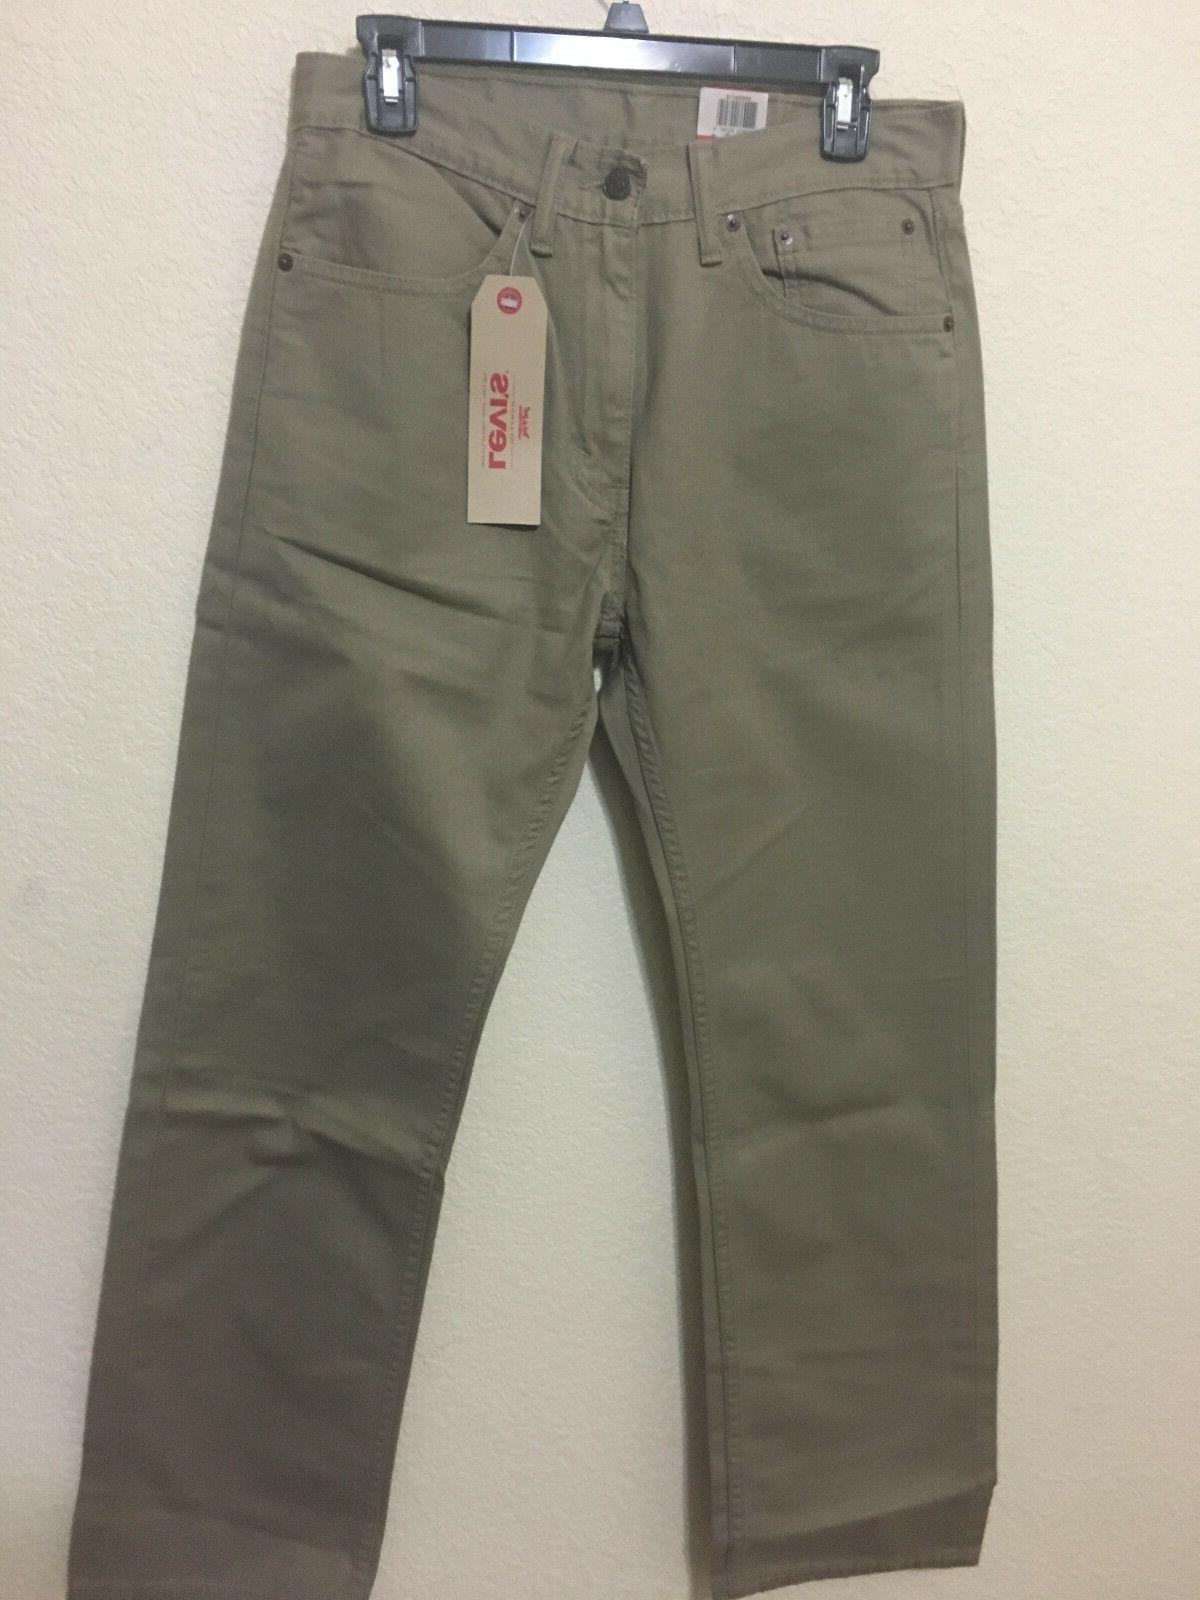 NWT - 0718 REGULAR STRAIGHT JEANS PANT DENIM